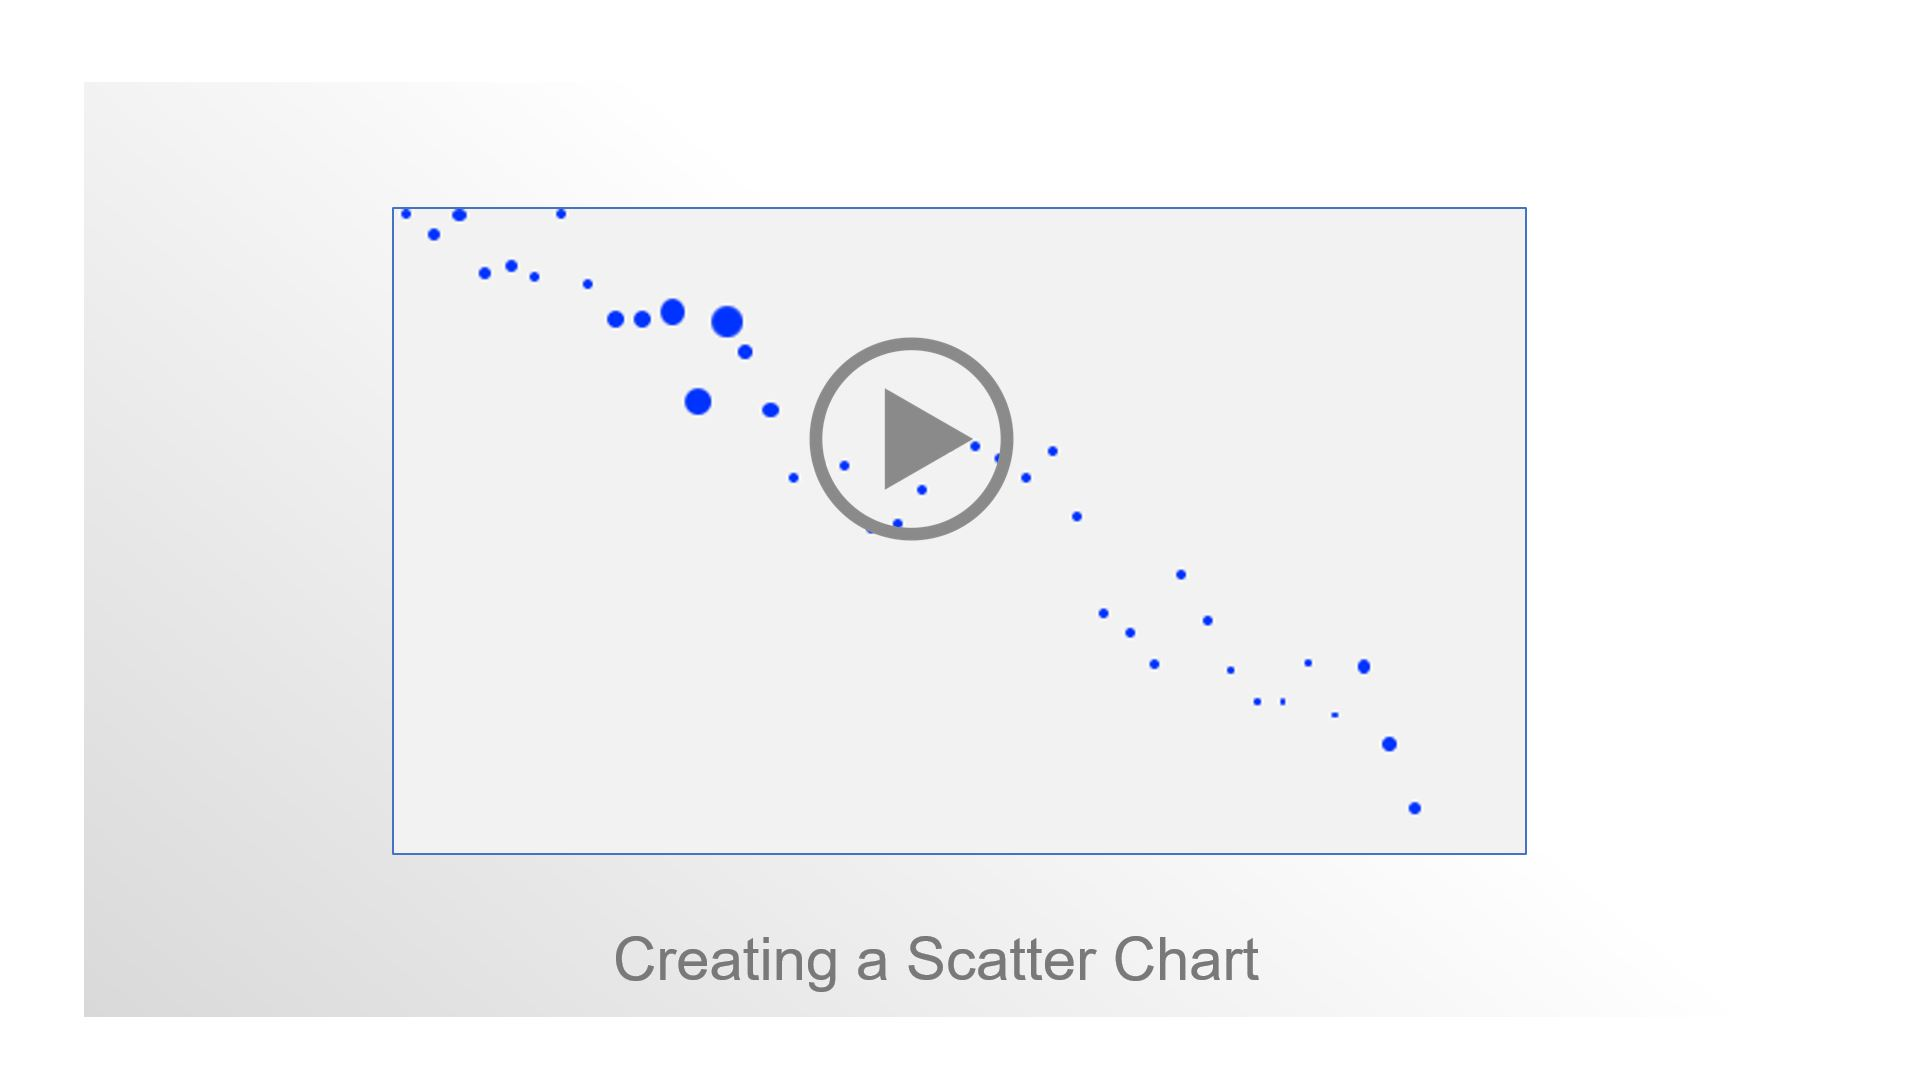 Creating a scatter chart in Axure, Tutorial